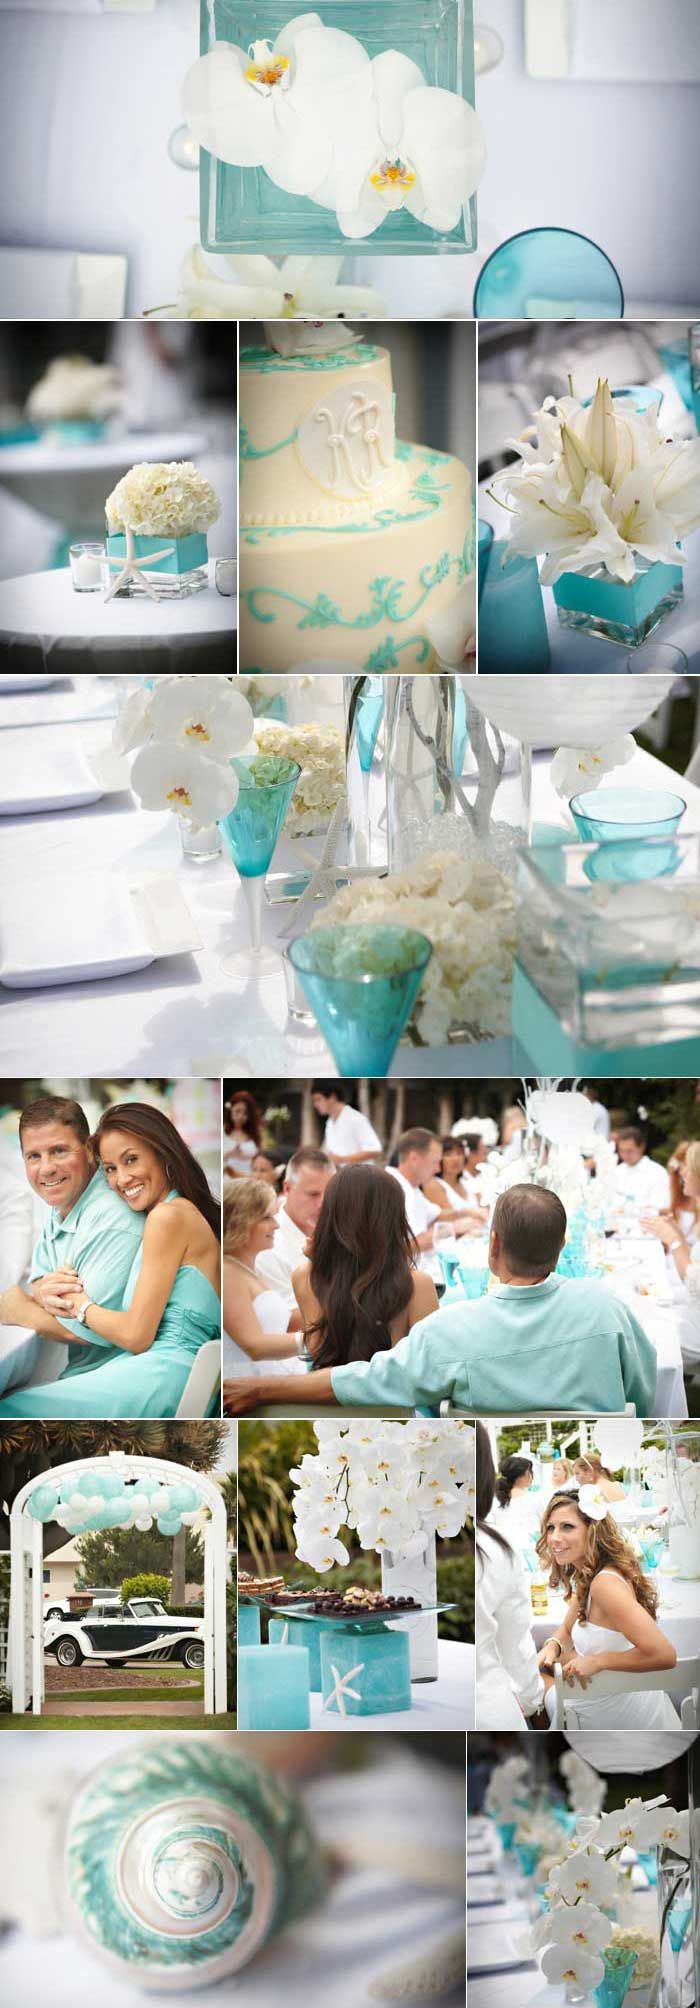 139 best images about Tiffany Blue Wedding Details on ...